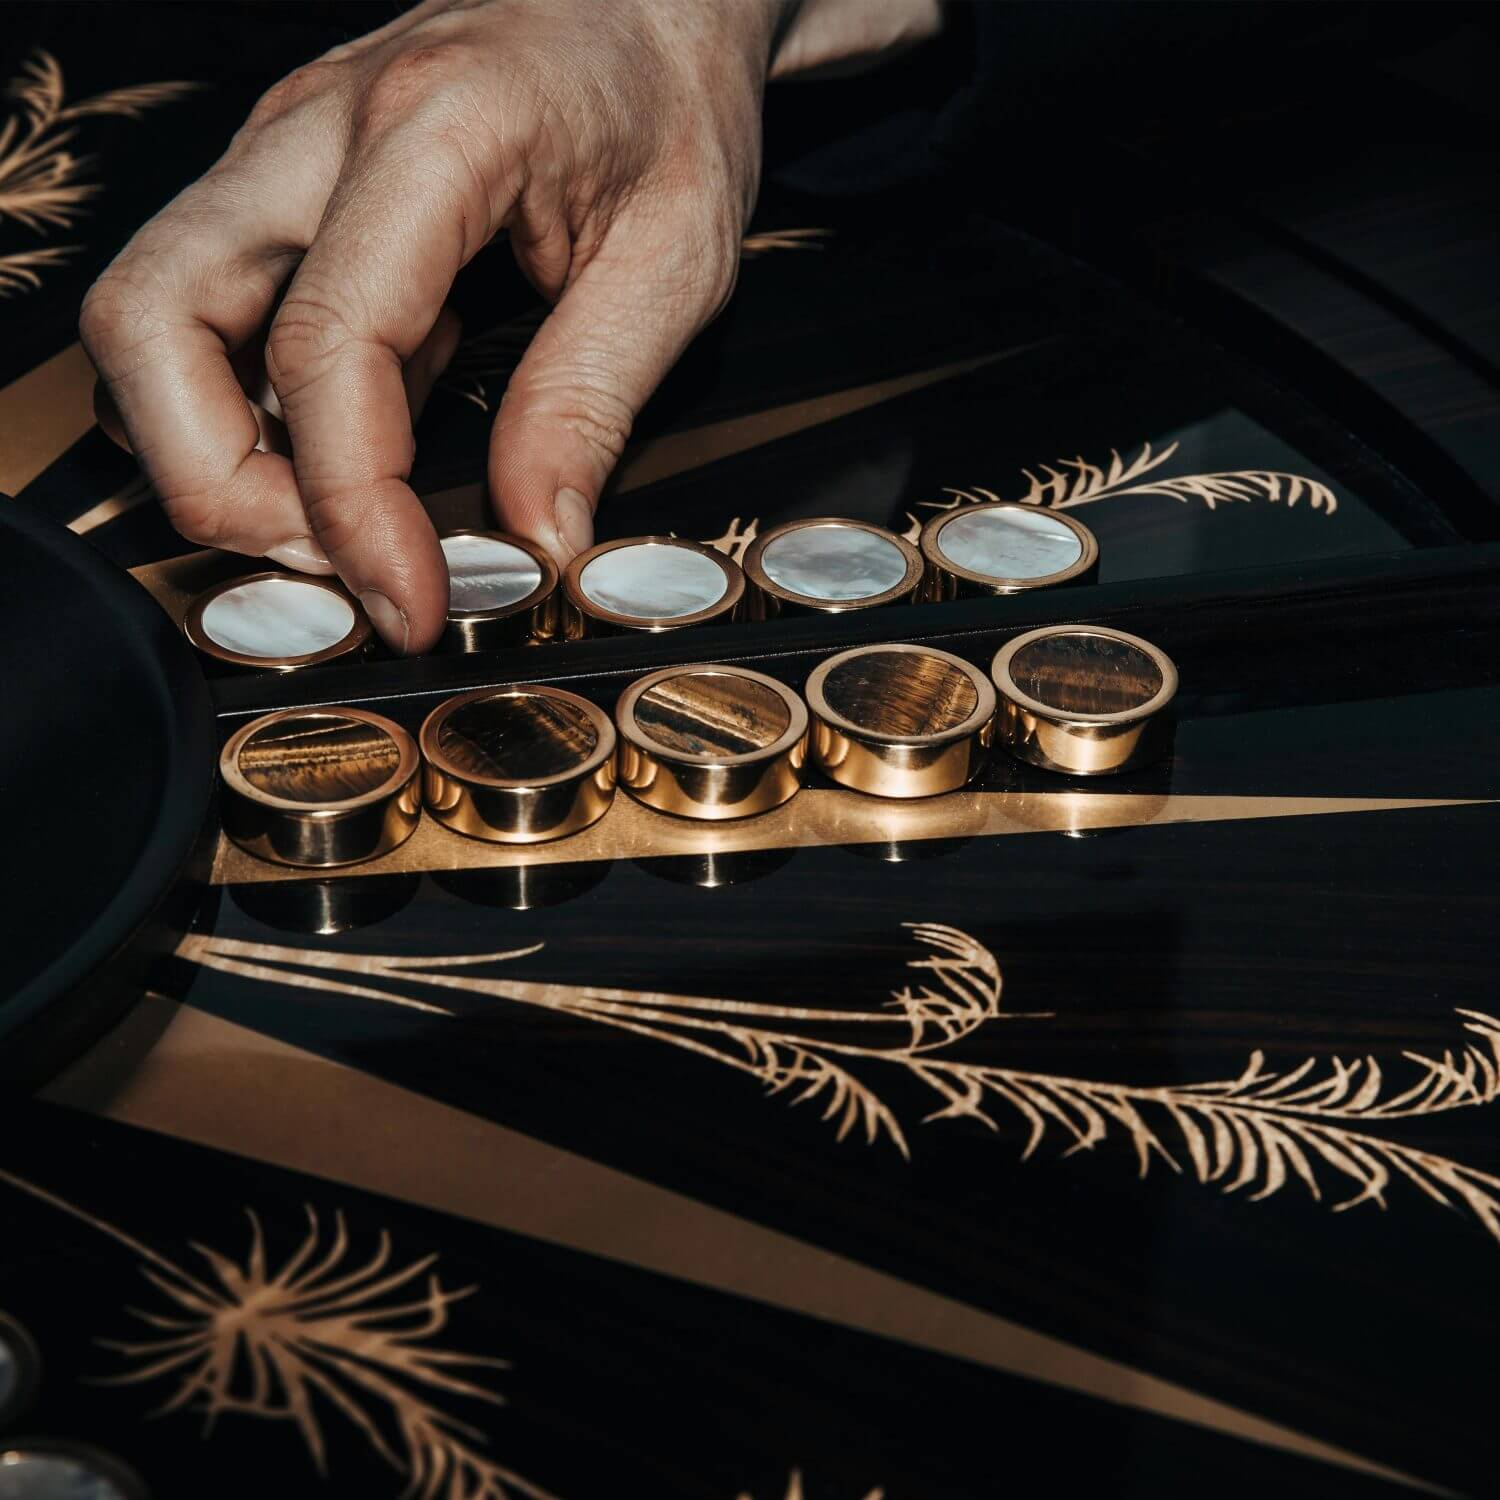 A man playing backgammon on a custom games table